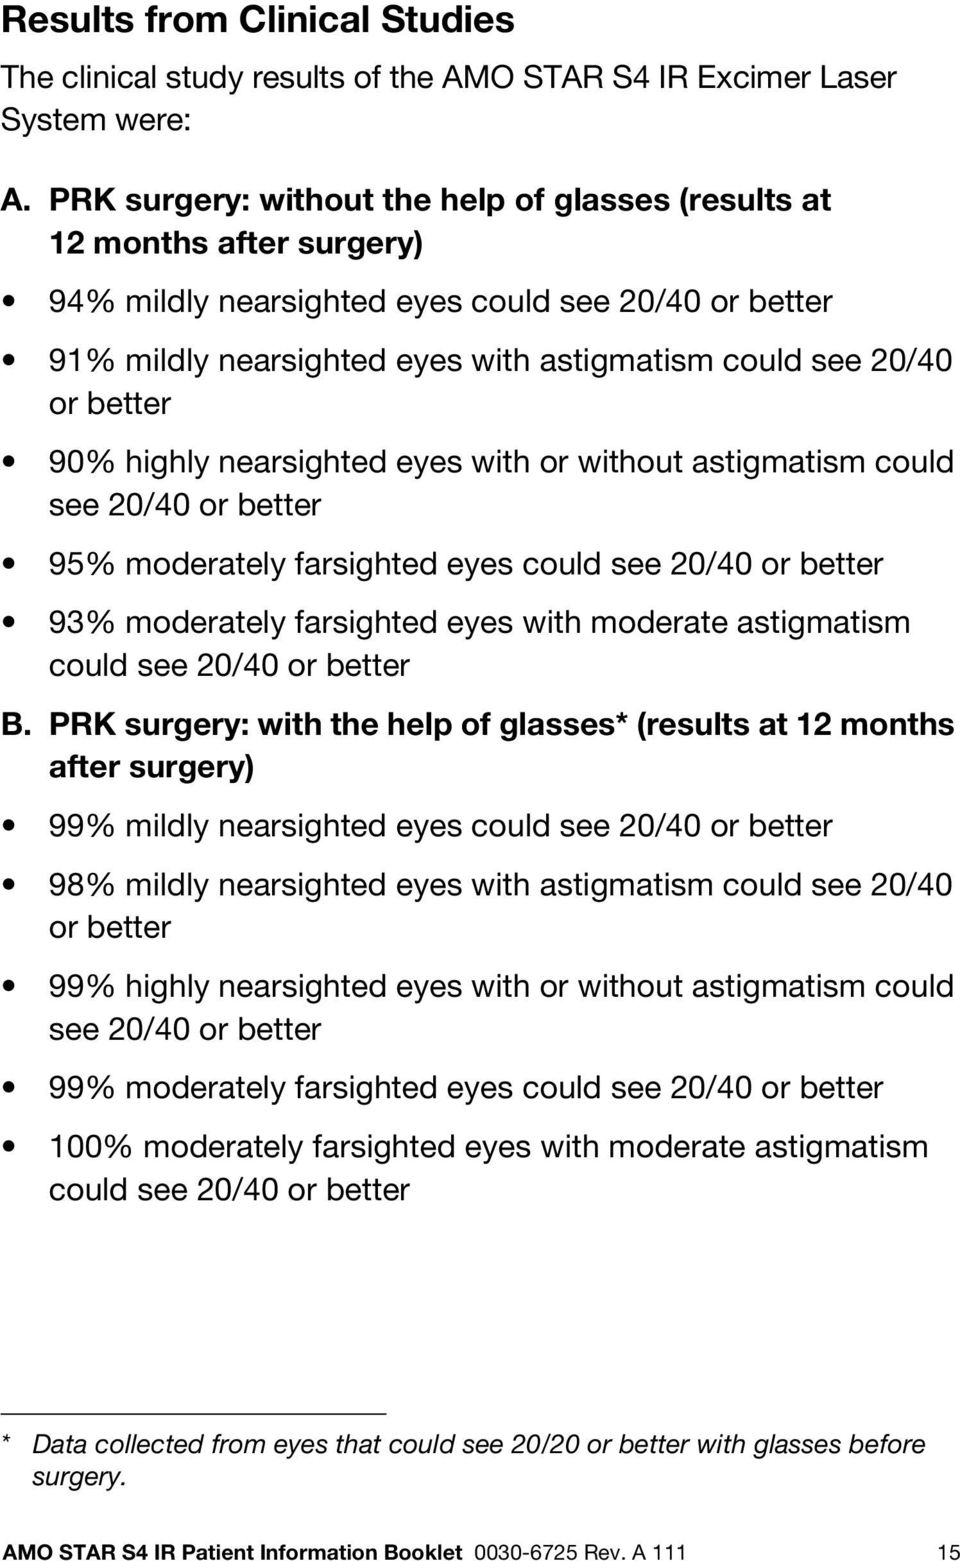 better 90% highly nearsighted eyes with or without astigmatism could see 20/40 or better 95% moderately farsighted eyes could see 20/40 or better 93% moderately farsighted eyes with moderate